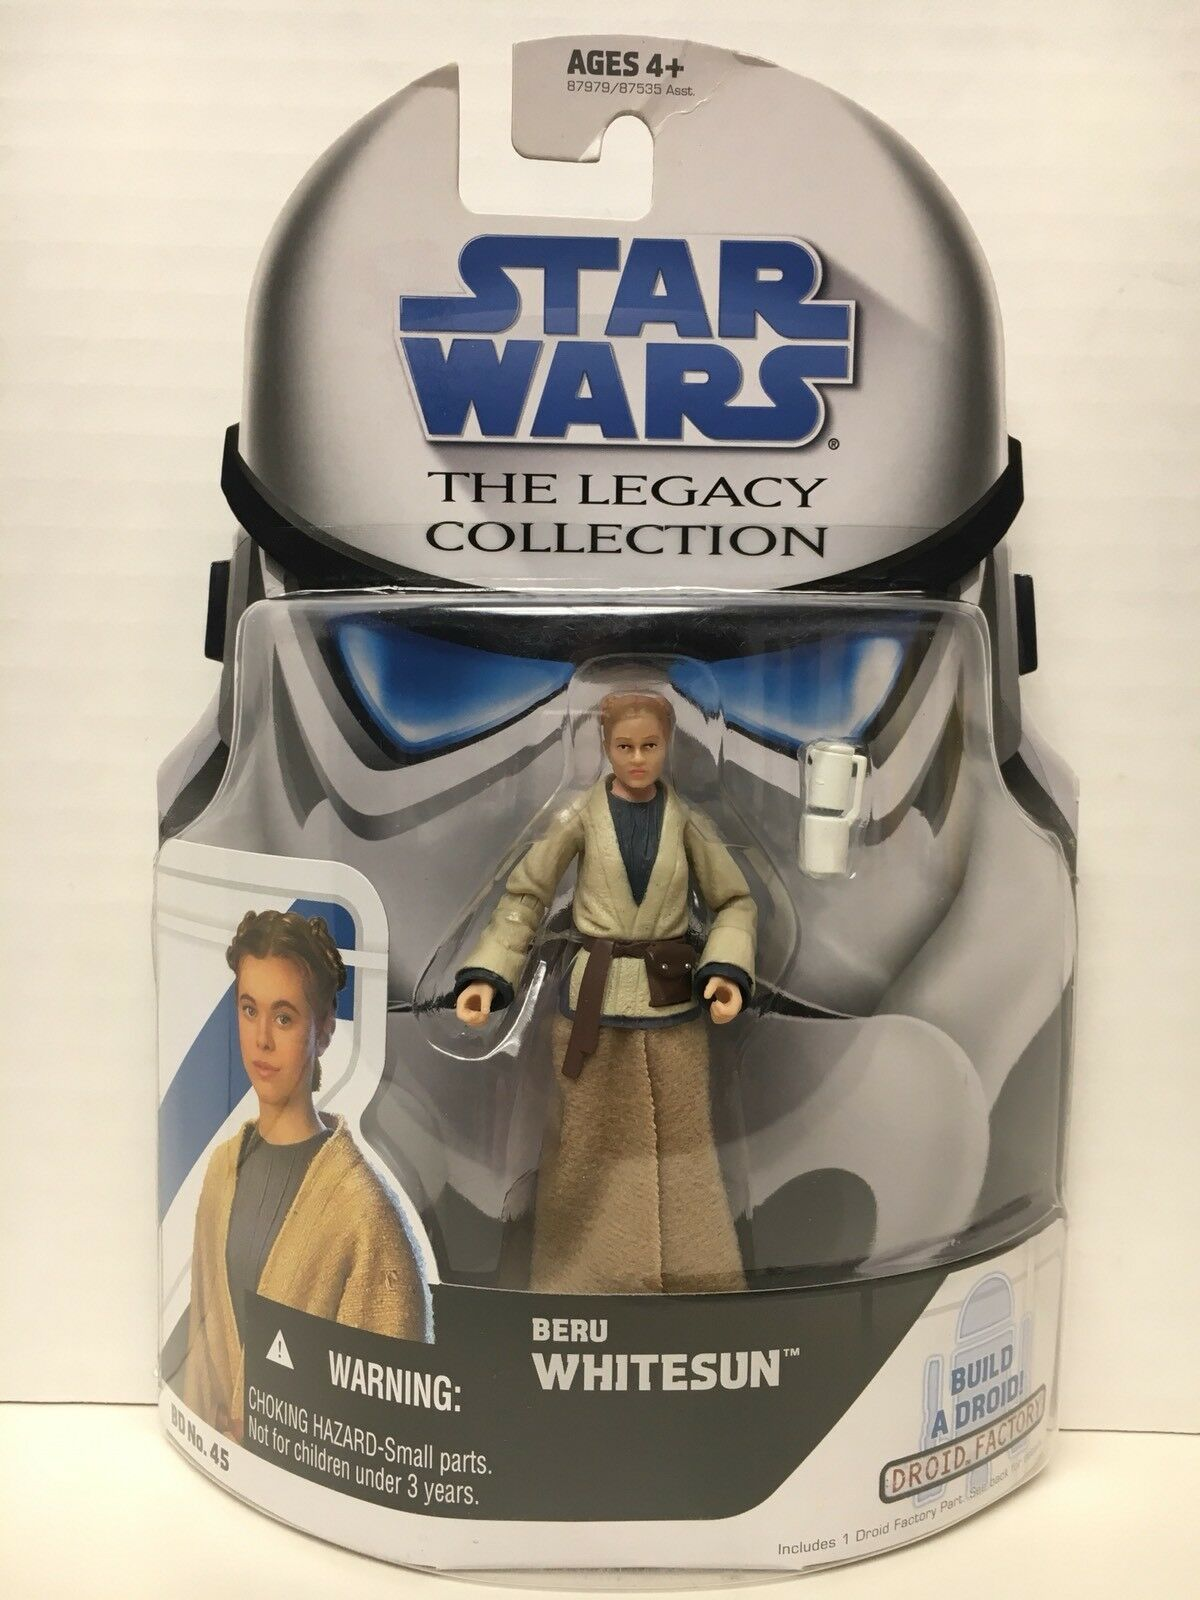 Star Wars The Legacy Collection Beru Whitesun BD No. 45 2009 Hasbro NEW TLC